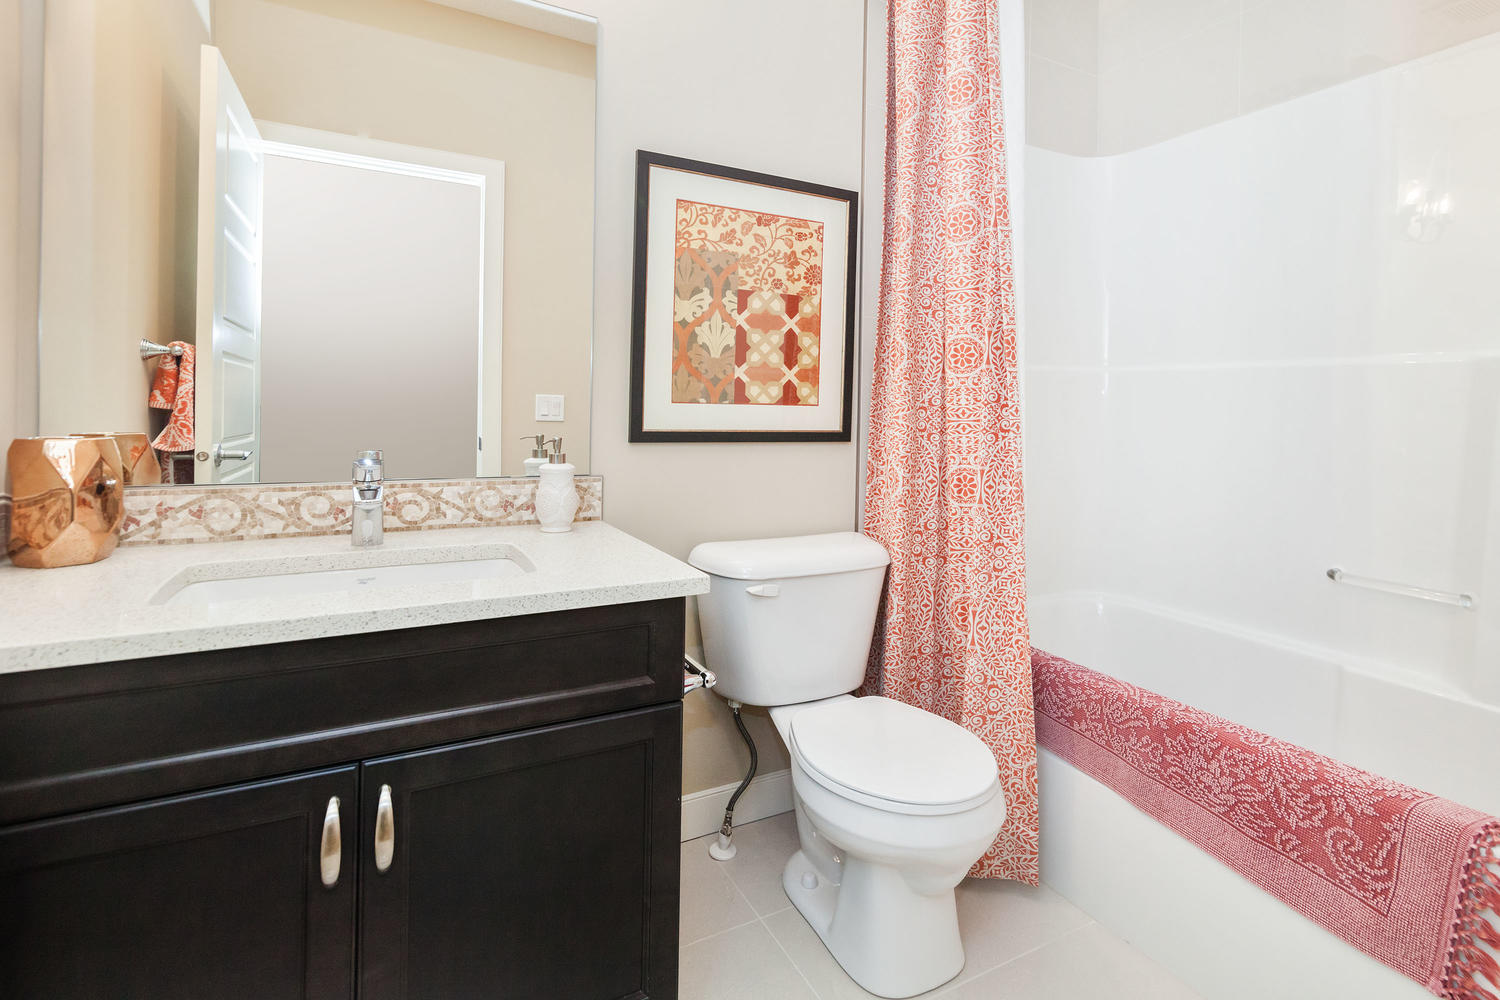 the upstairs bathroom with combination shower and tub in a pacesetter front drive home.